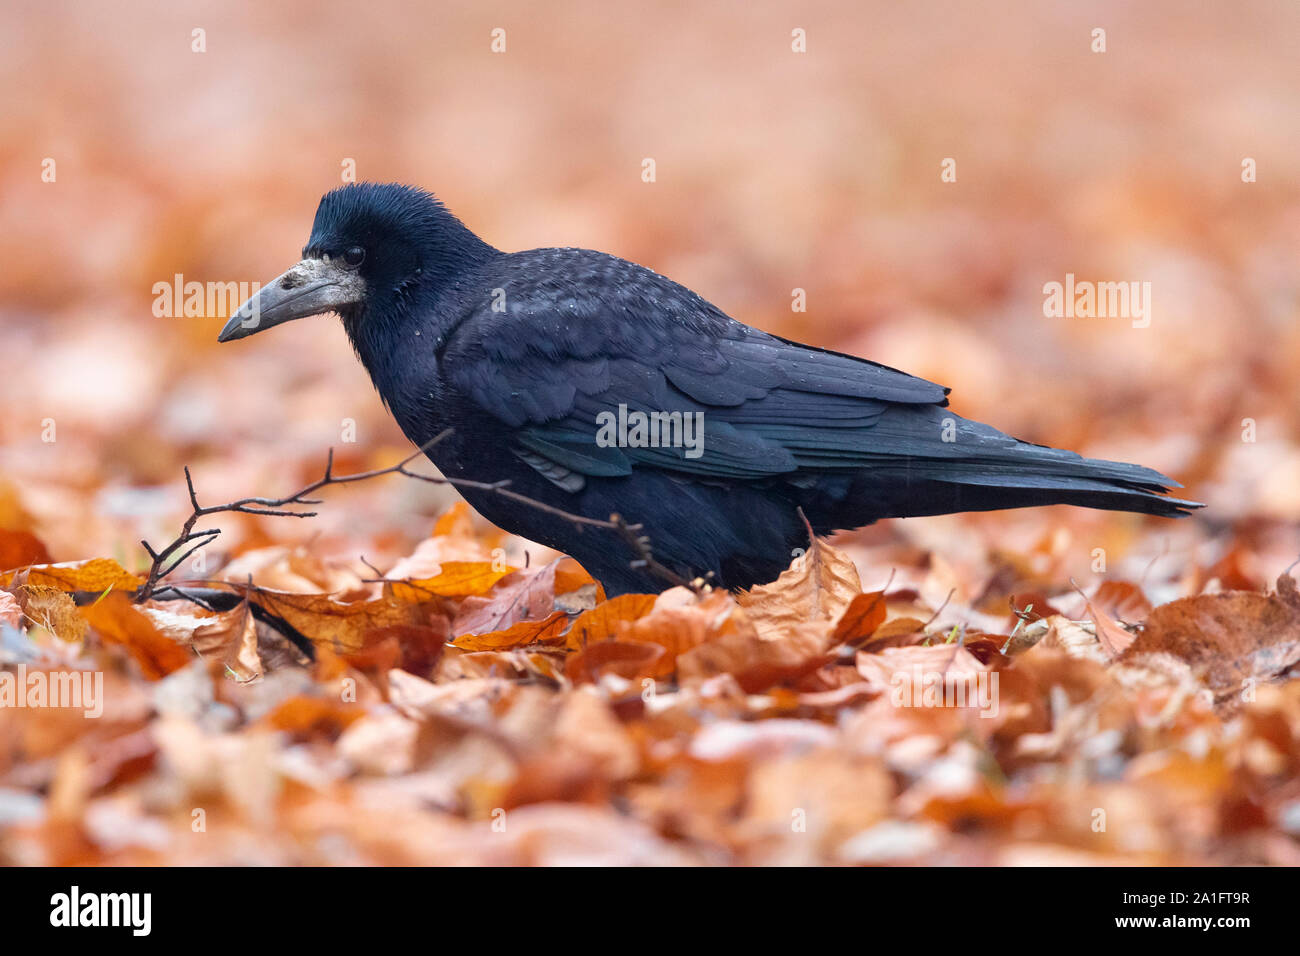 Rook (Corvus frugileus), side view of an adult standing among autumn leaves, Warsaw, Poland Stock Photo